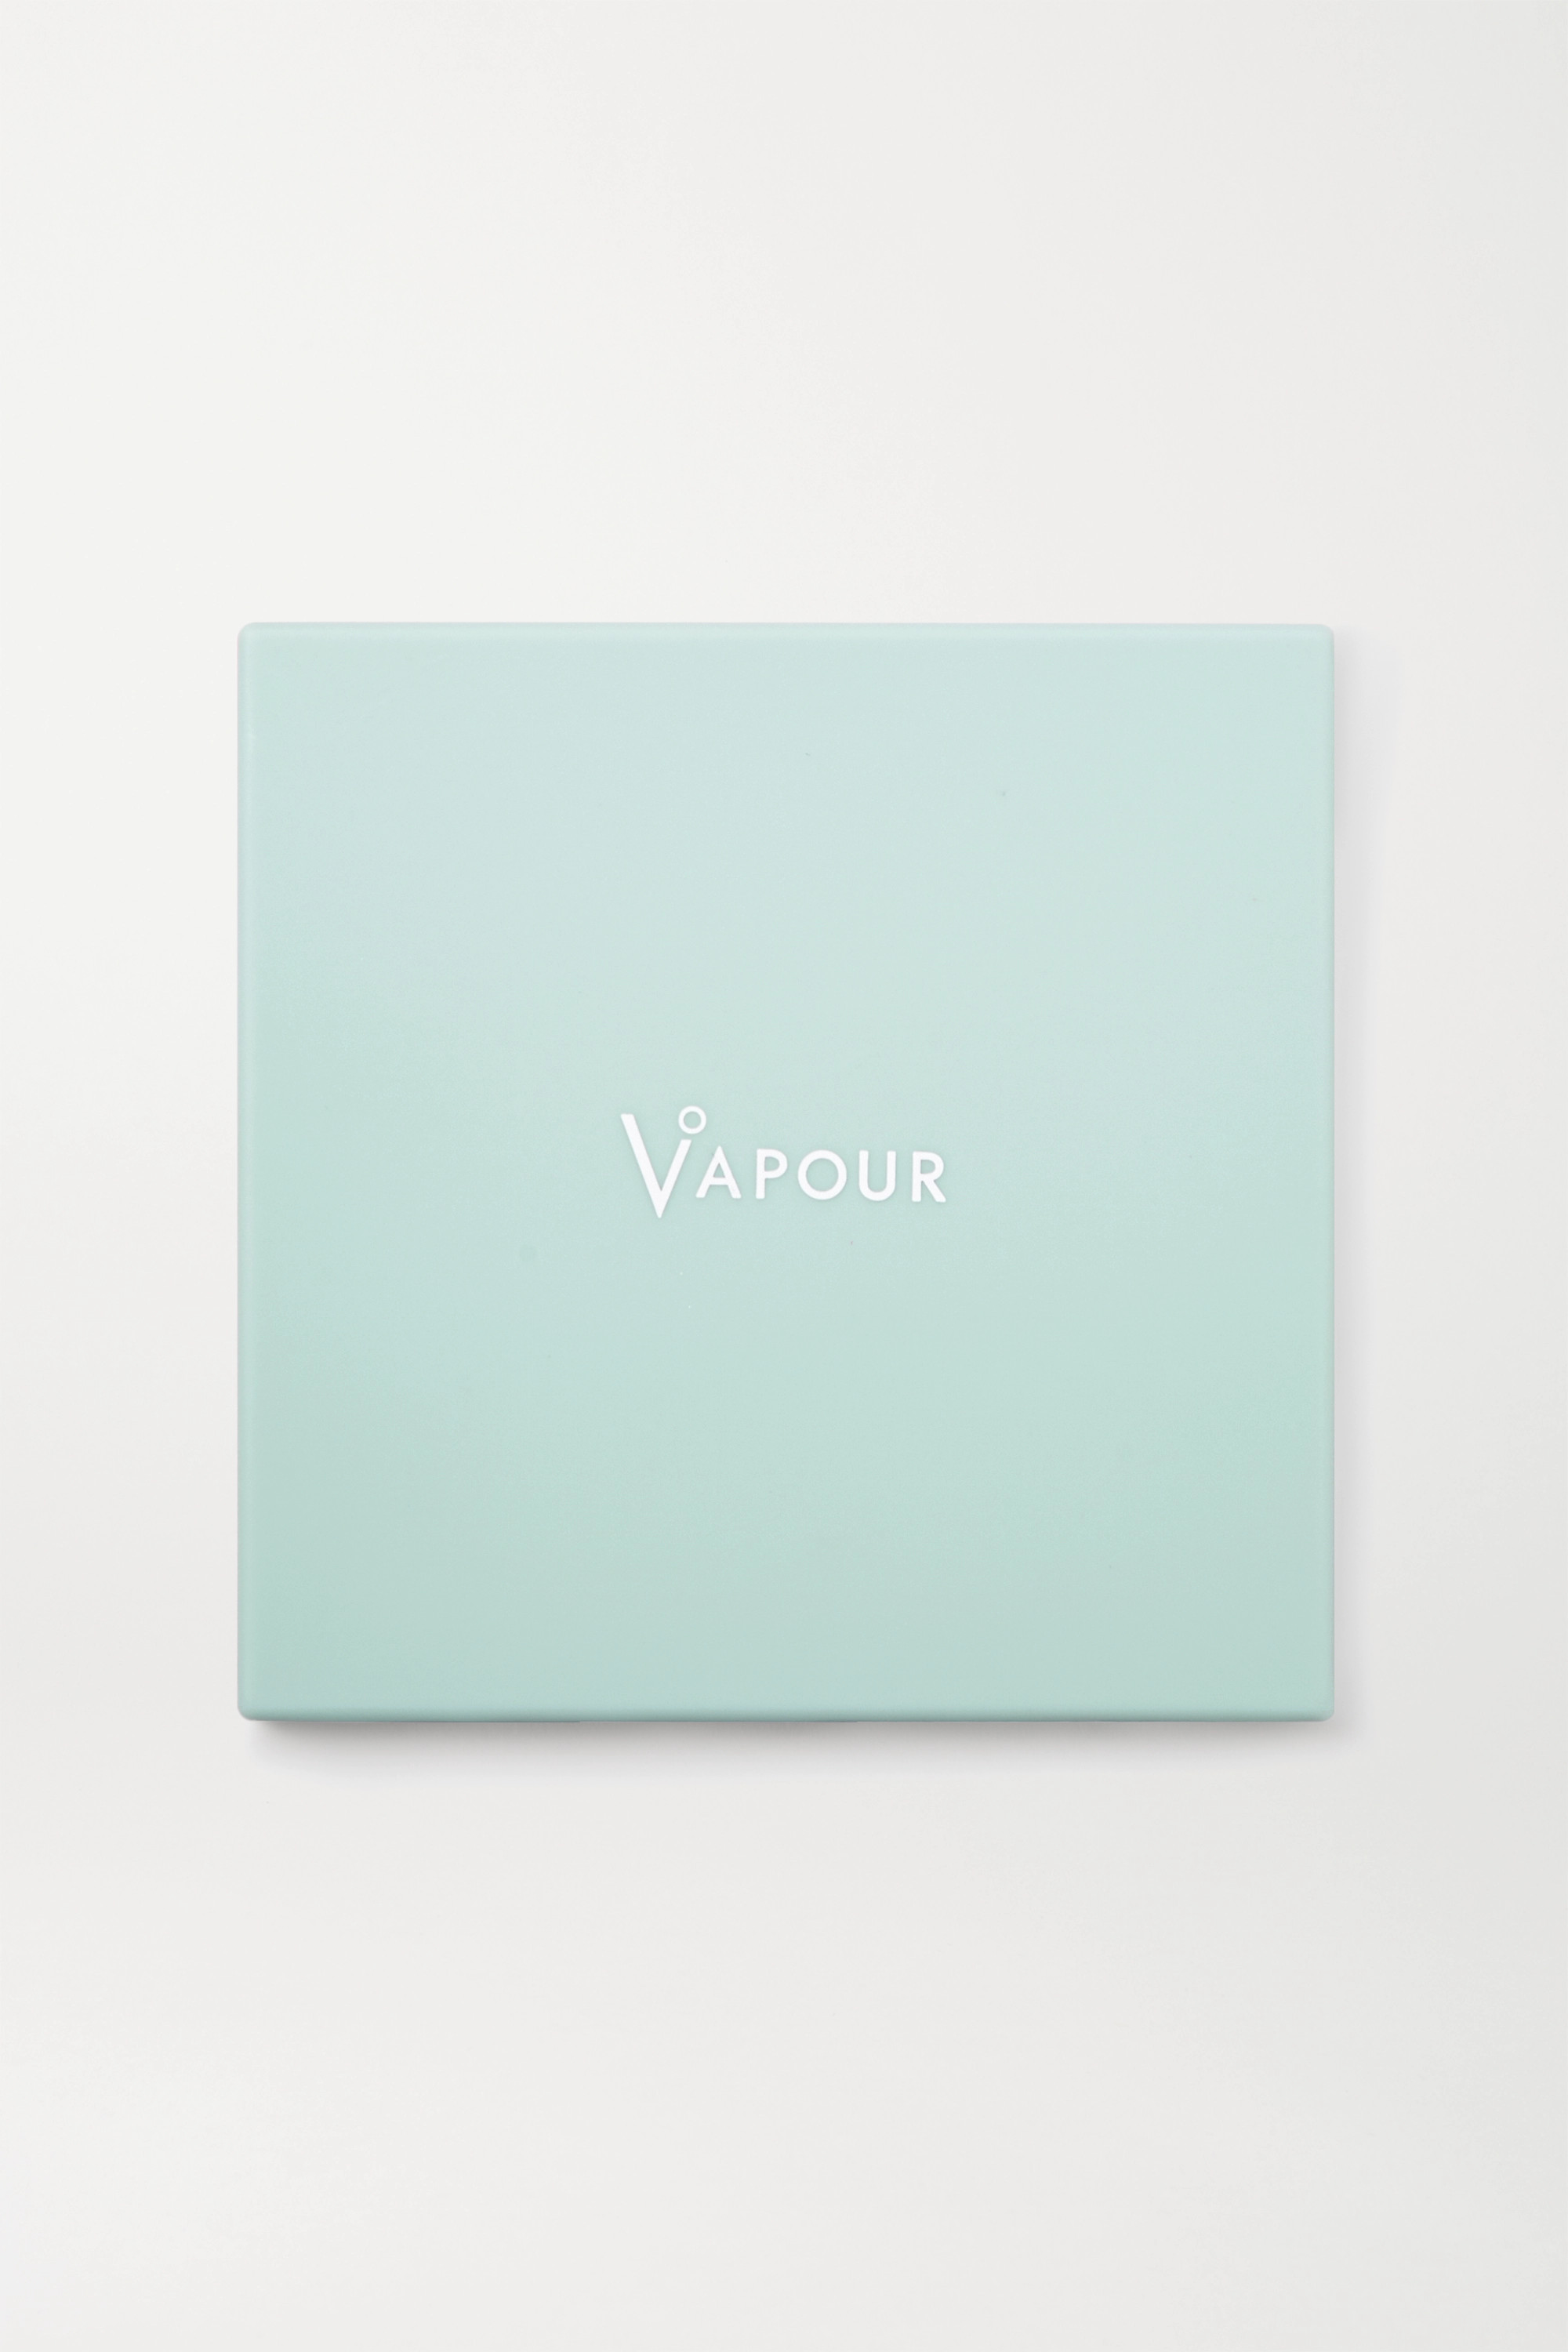 Vapour Beauty 四色眼影盘(色号:Archetype)